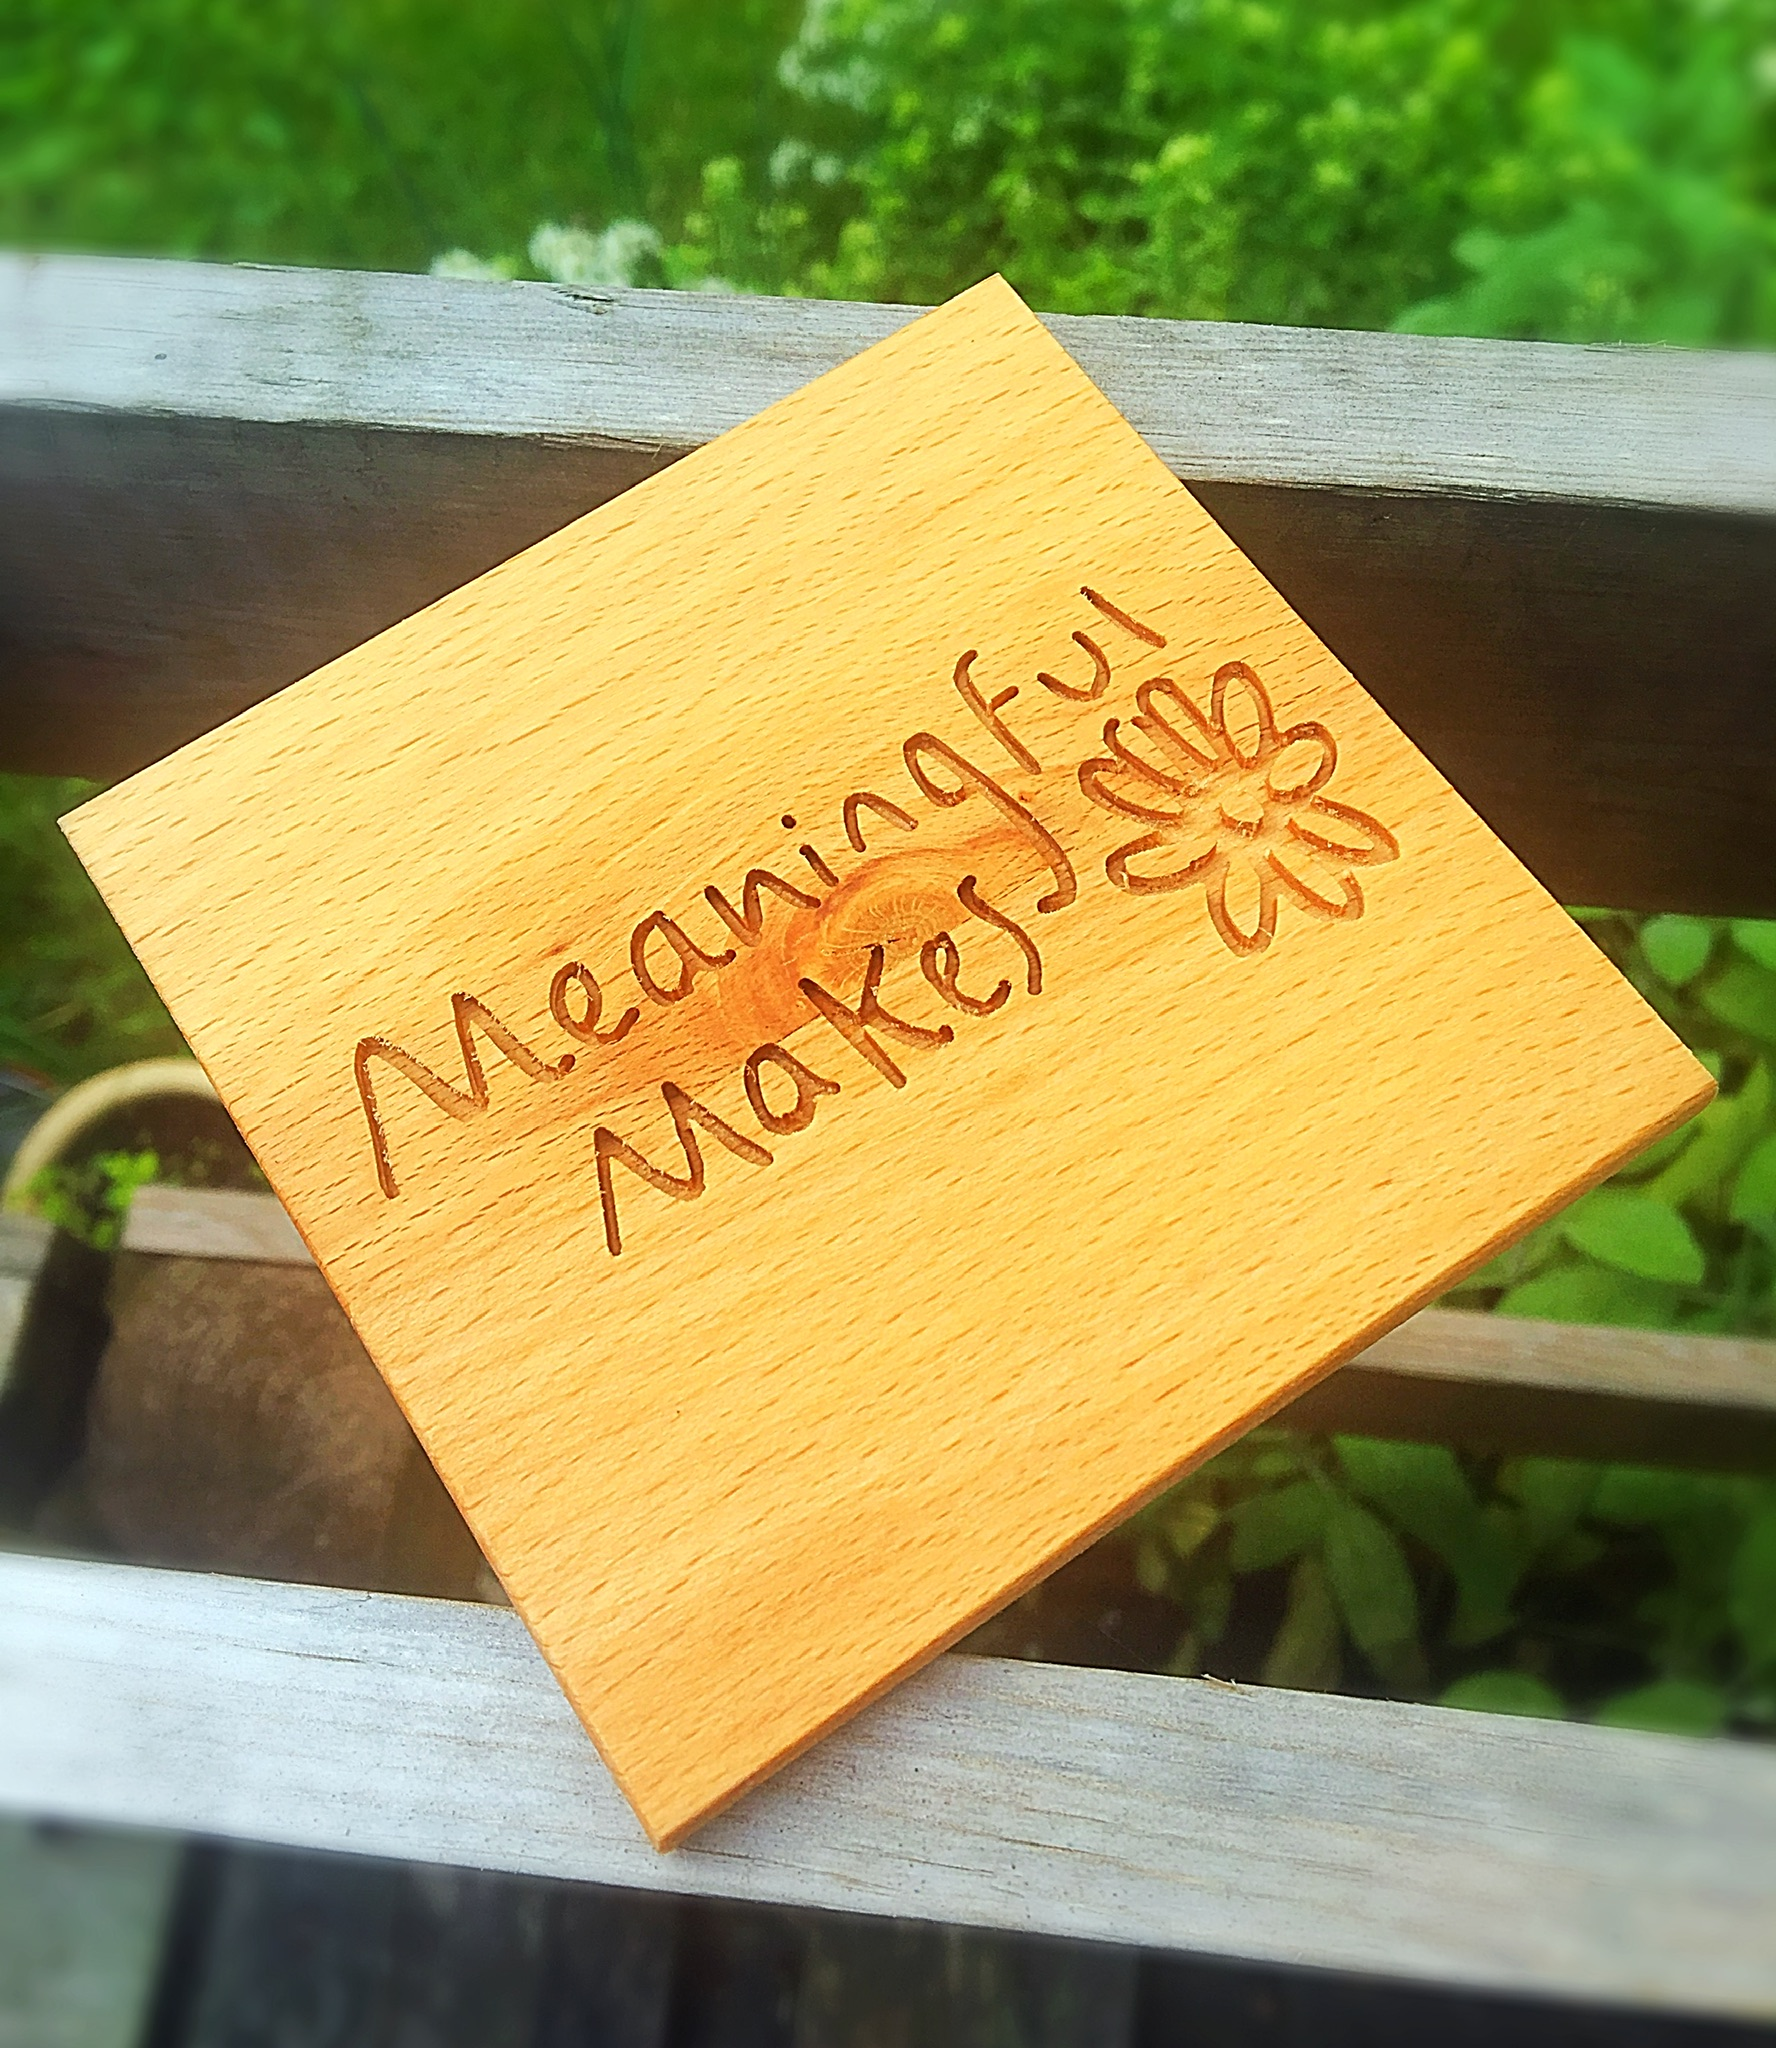 We were delighted to make a solid beech business logo coaster for the lovely Meaningful Makes. They are a new business who are starting out selling handmade gifts, home decor, personalised presents and seasonal items.  Check out their Etsy store  here .